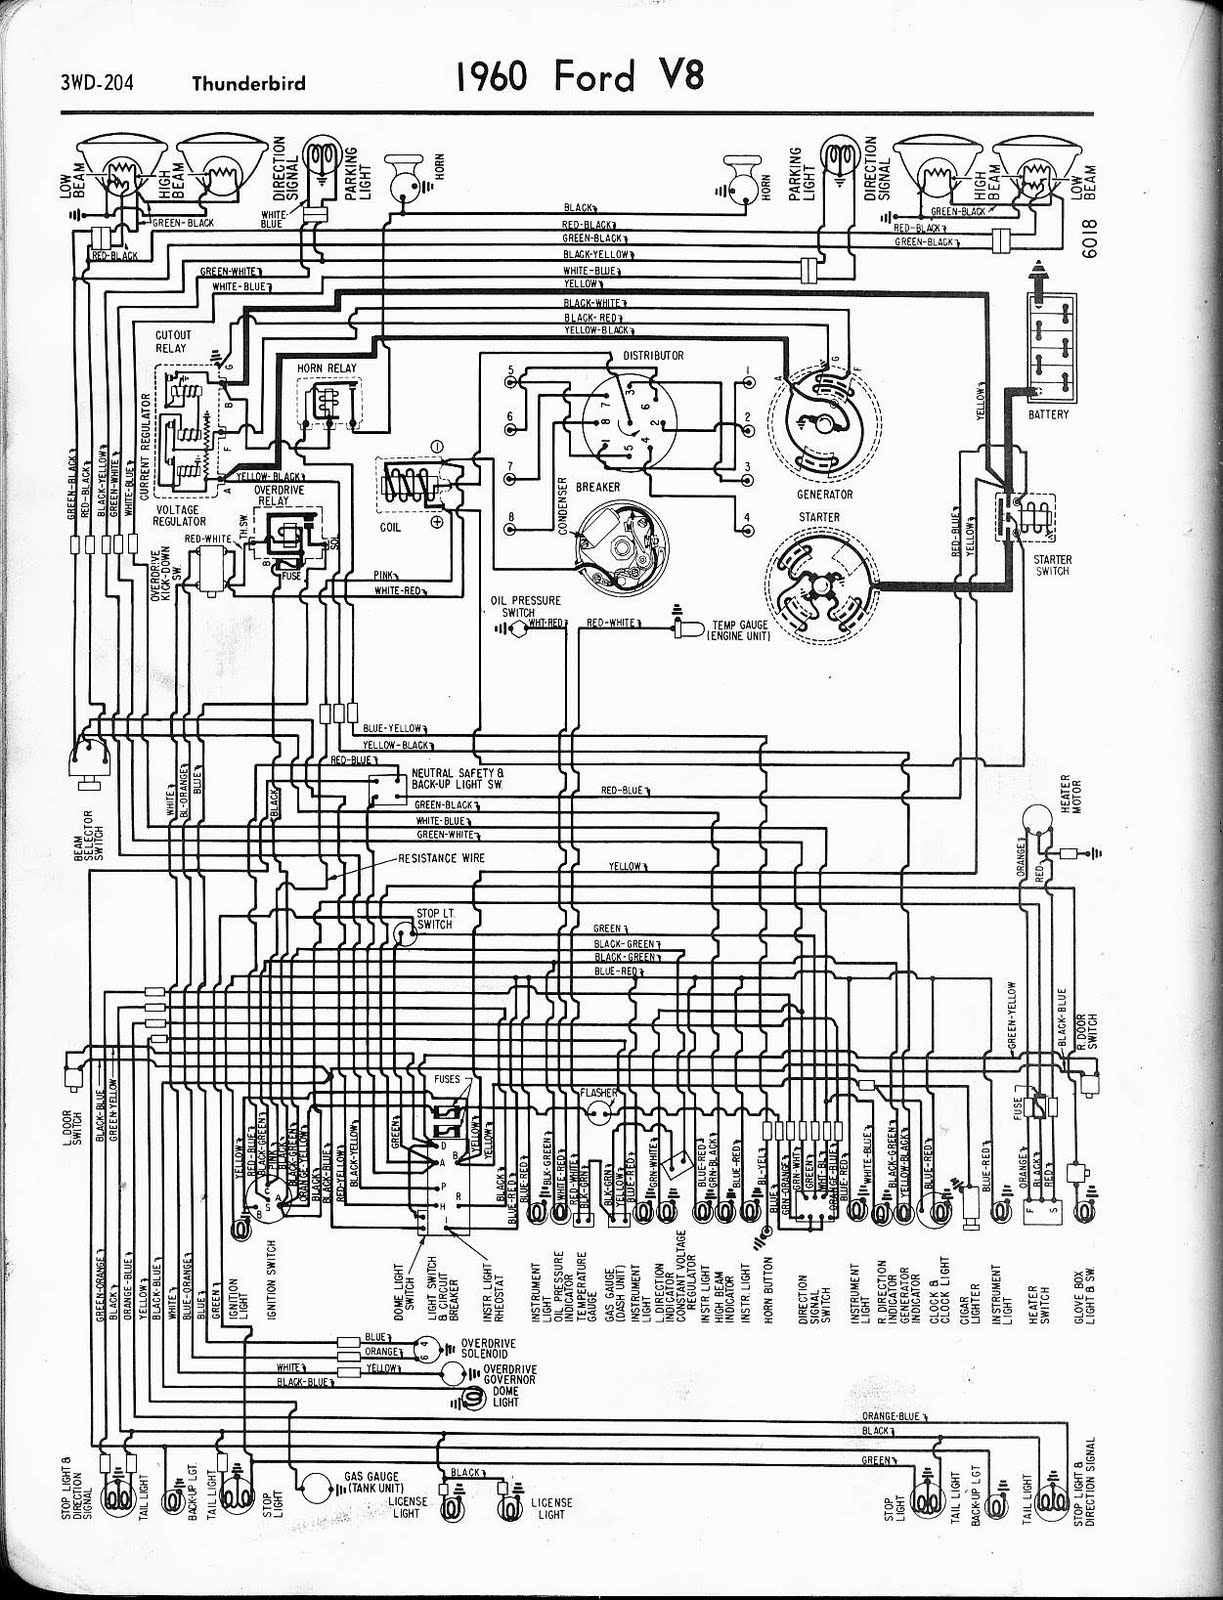 1960+Ford+Thunderbird+V8 free auto wiring diagram 1960 ford v8 thunderbird wiring diagram